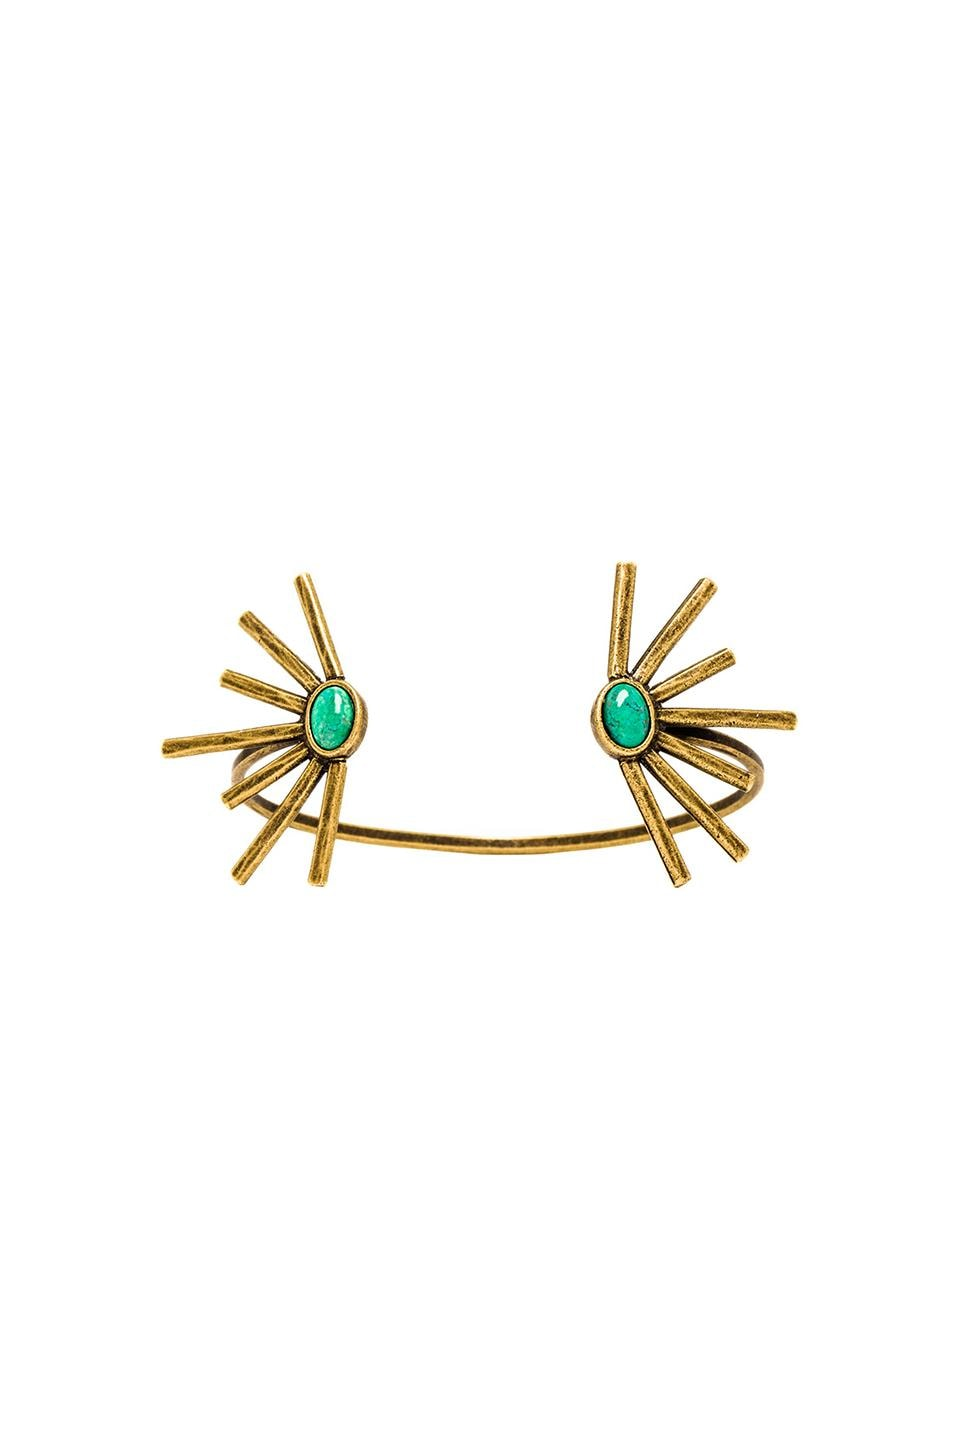 2 Bandits Open Sunshine Daydream Cuff in Turquoise & Gold